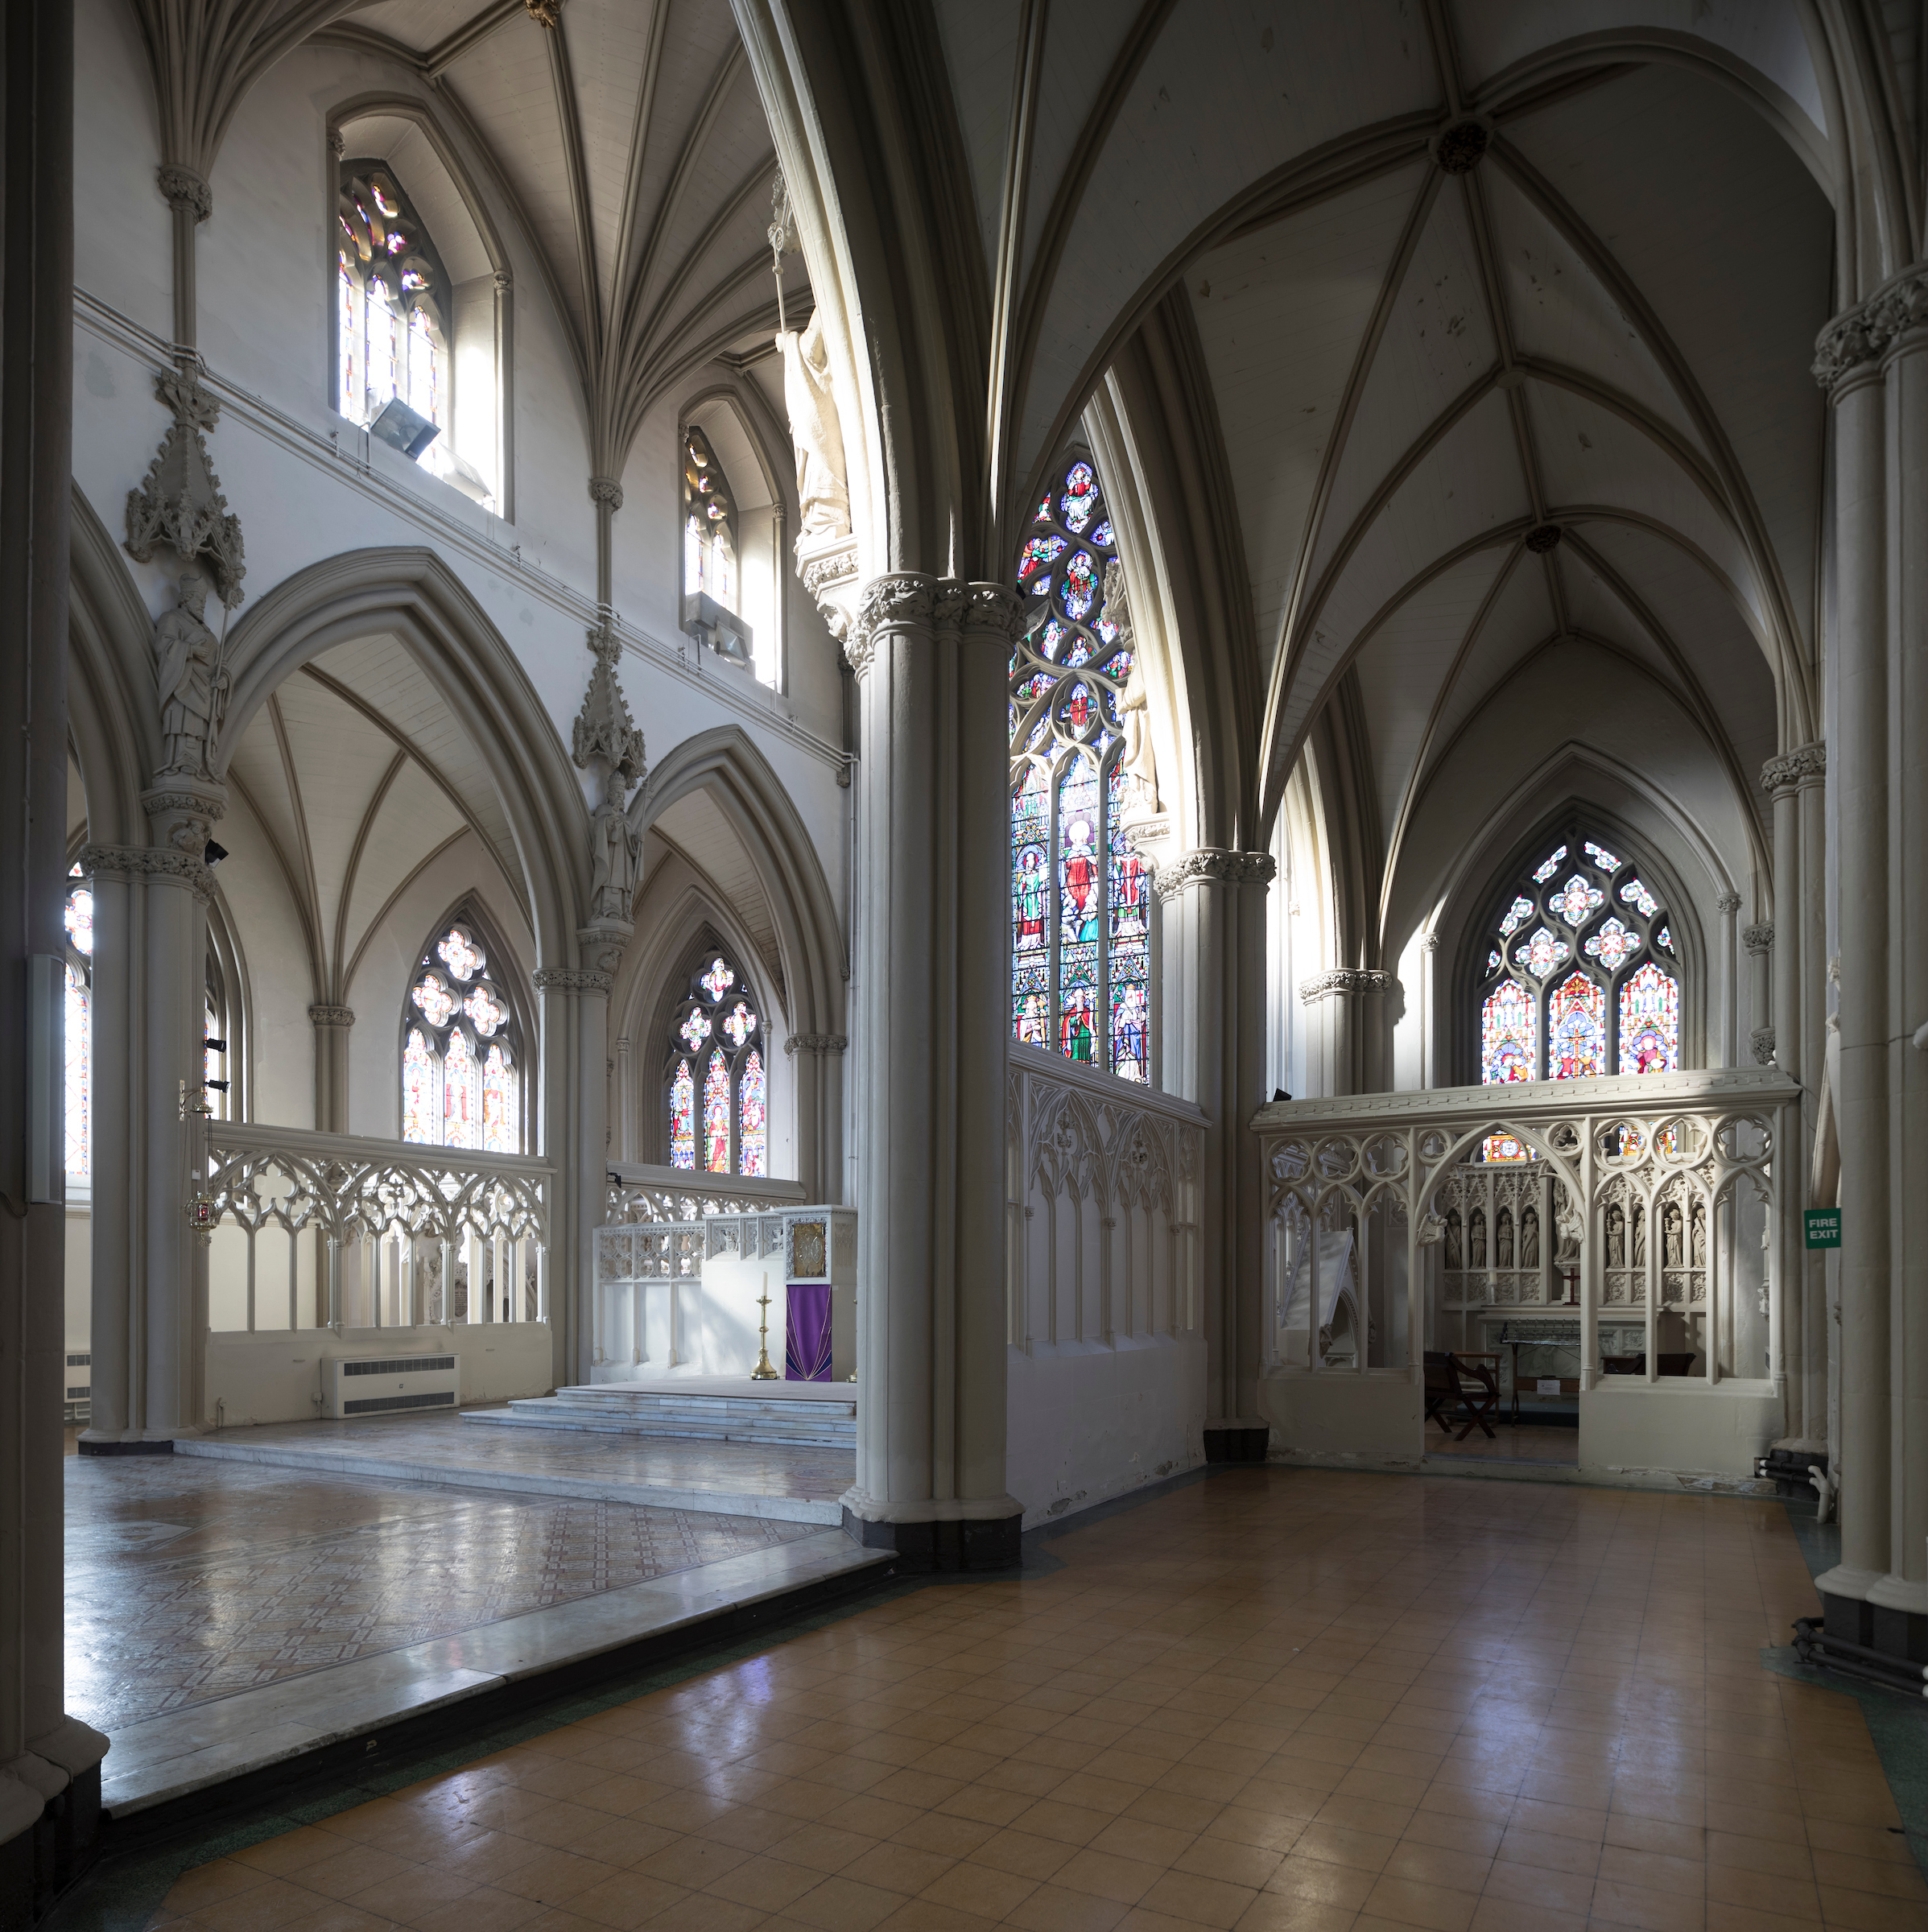 A great image of the Sanctuary and the side chapel with the magnificent ceilings in view